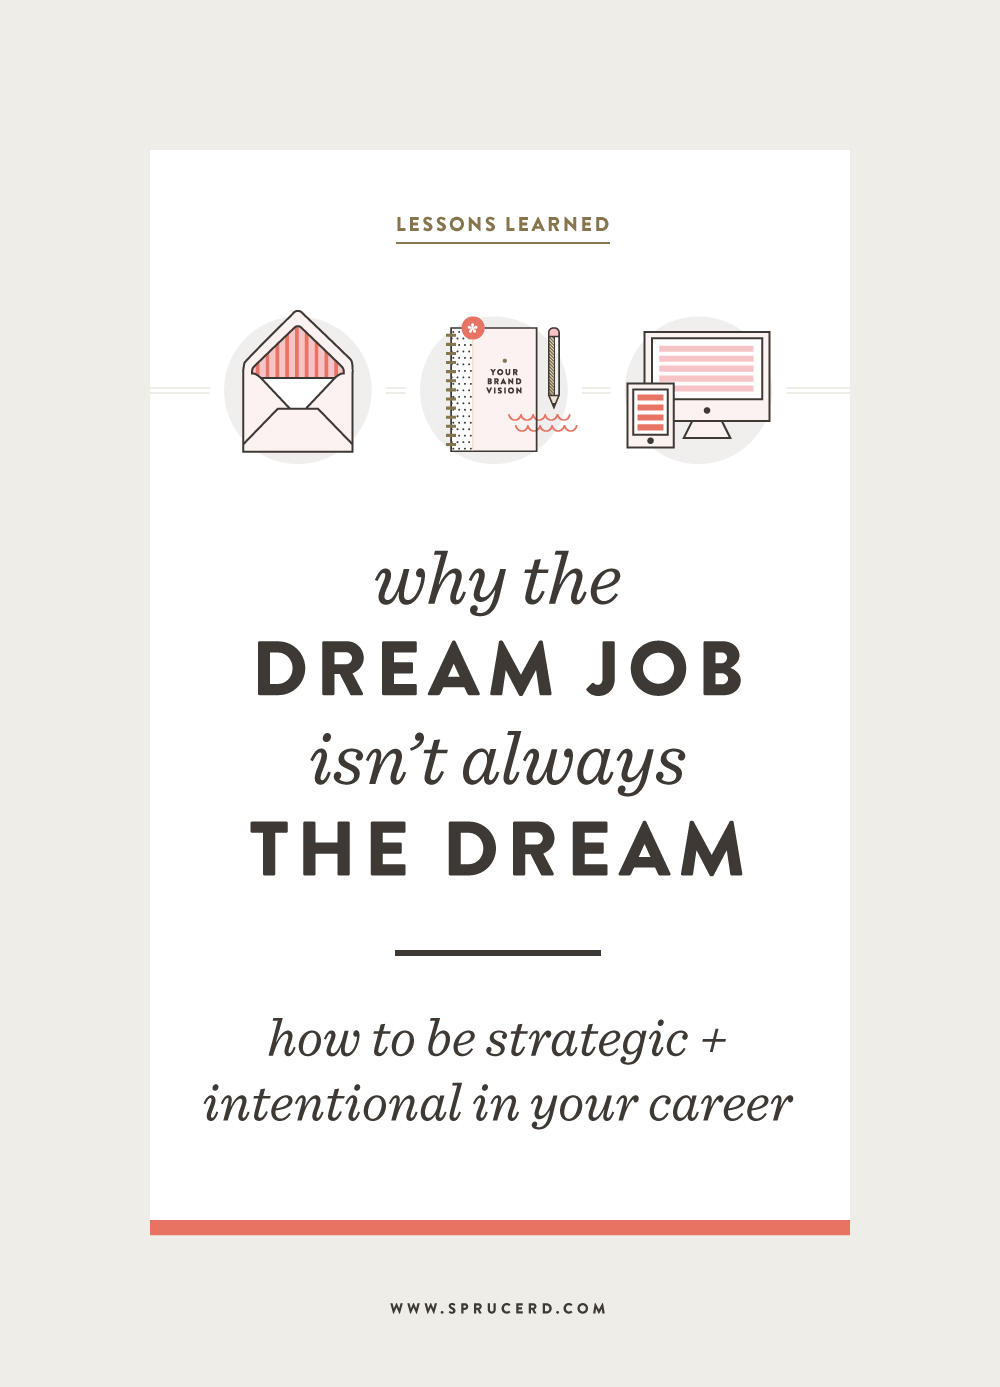 Why the Dream Job Isn't Always the Dream | How to be strategic + intentional in your career - Spruce Rd.